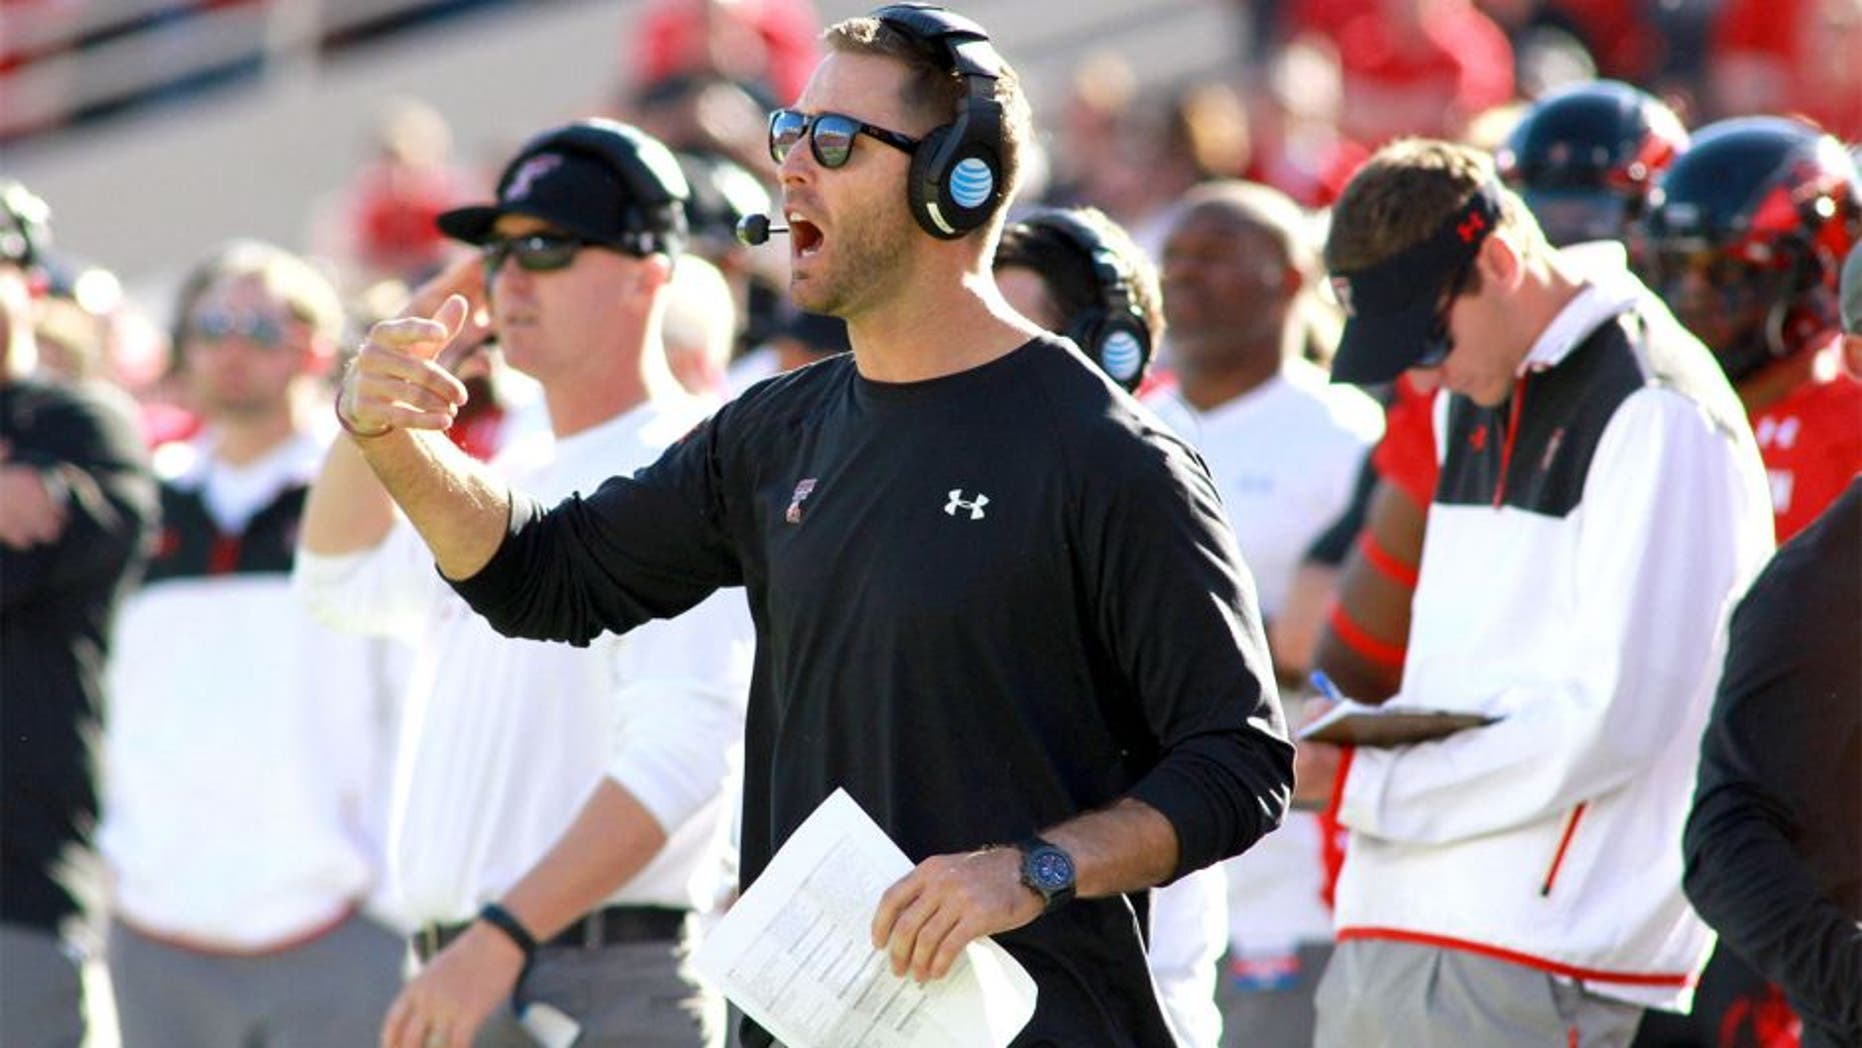 Nov 15, 2014; Lubbock, TX, USA; Texas Tech Red Raiders head coach Kliff Kingsbury yells during the game with the Oklahoma Sooners at Jones AT&T Stadium. Mandatory Credit: Michael C. Johnson-USA TODAY Sports